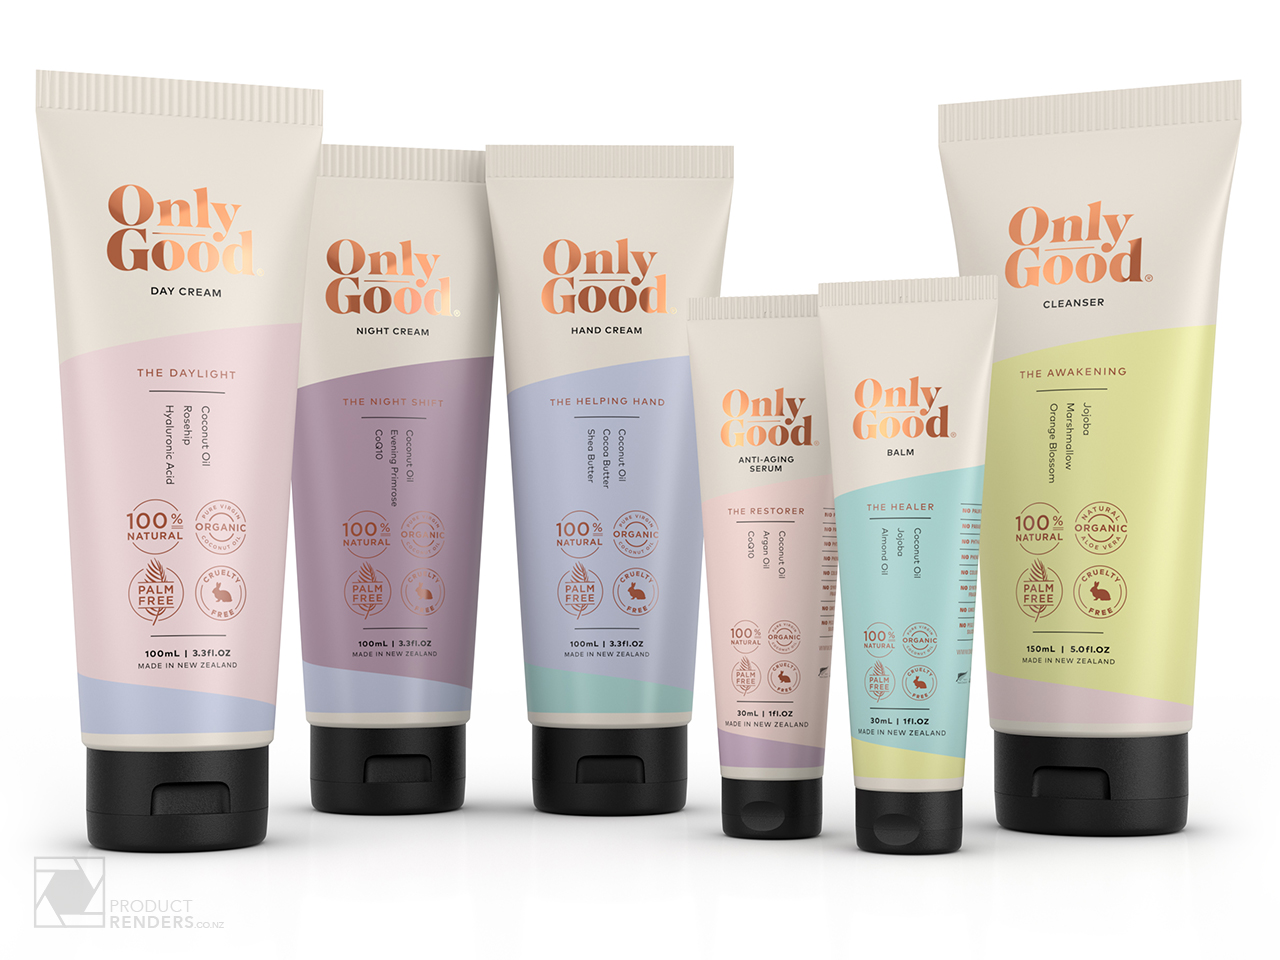 3D packaging render of the OnlyGood range of body creams